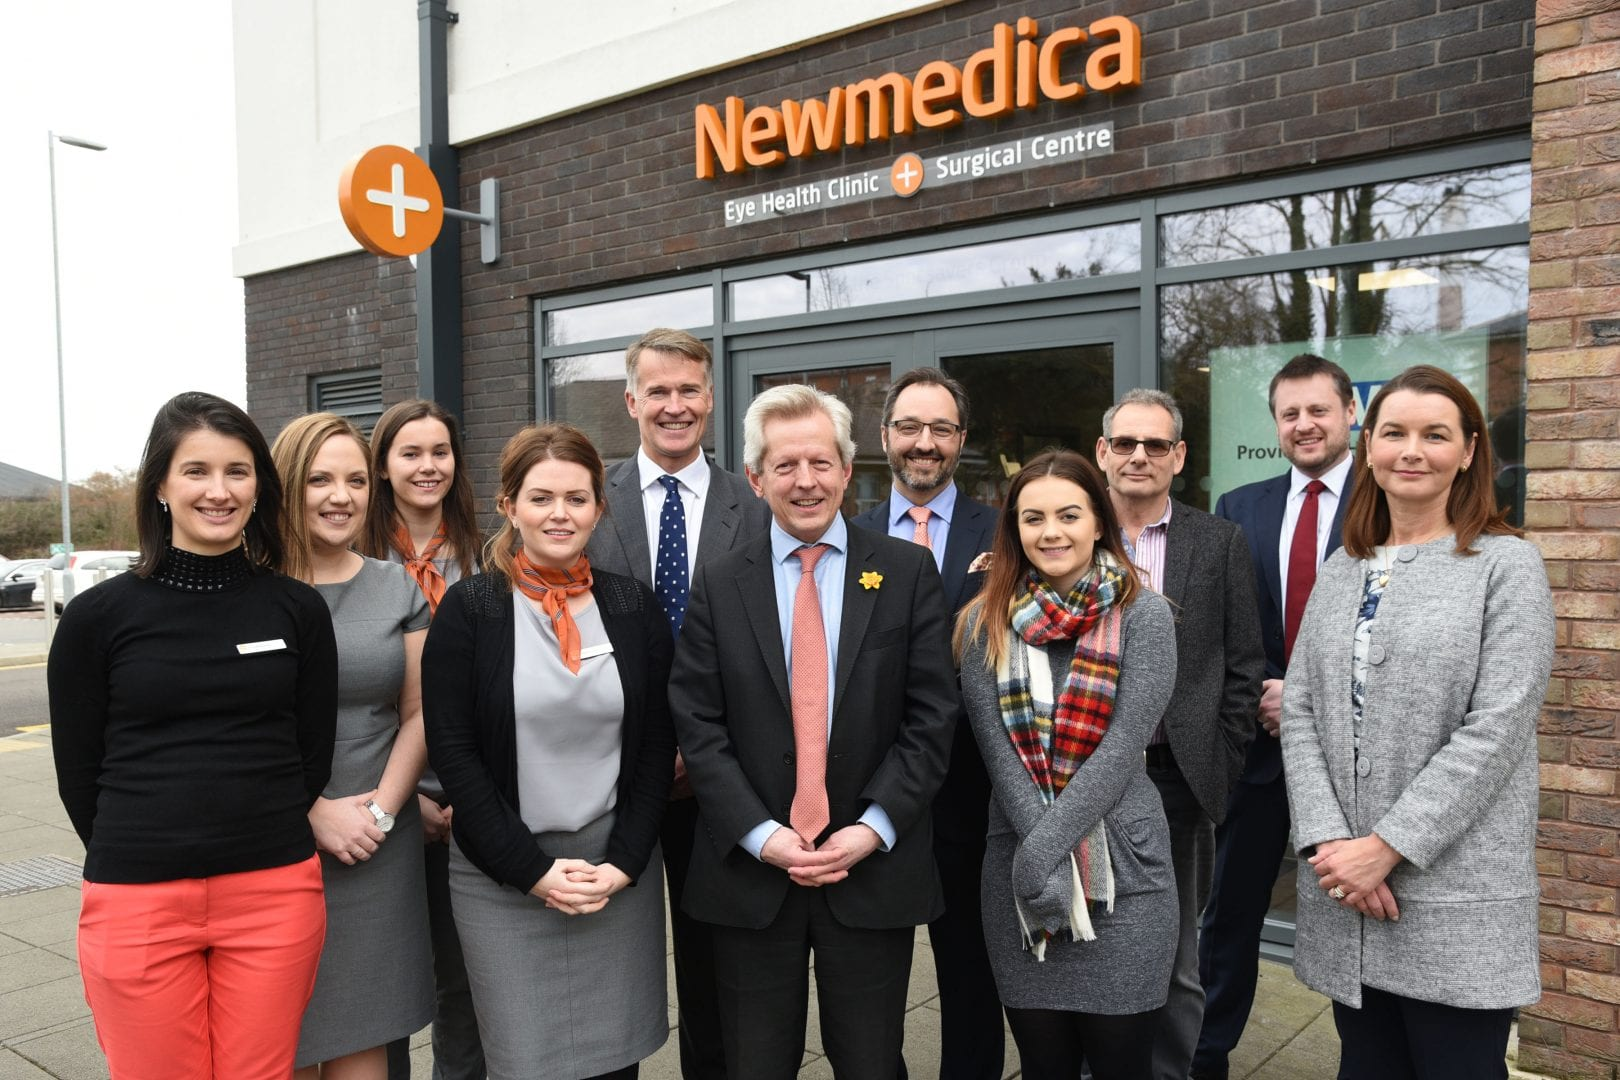 PSS attend the launch of Gloucester Newmedica, providing diathermy equipment and consumables.